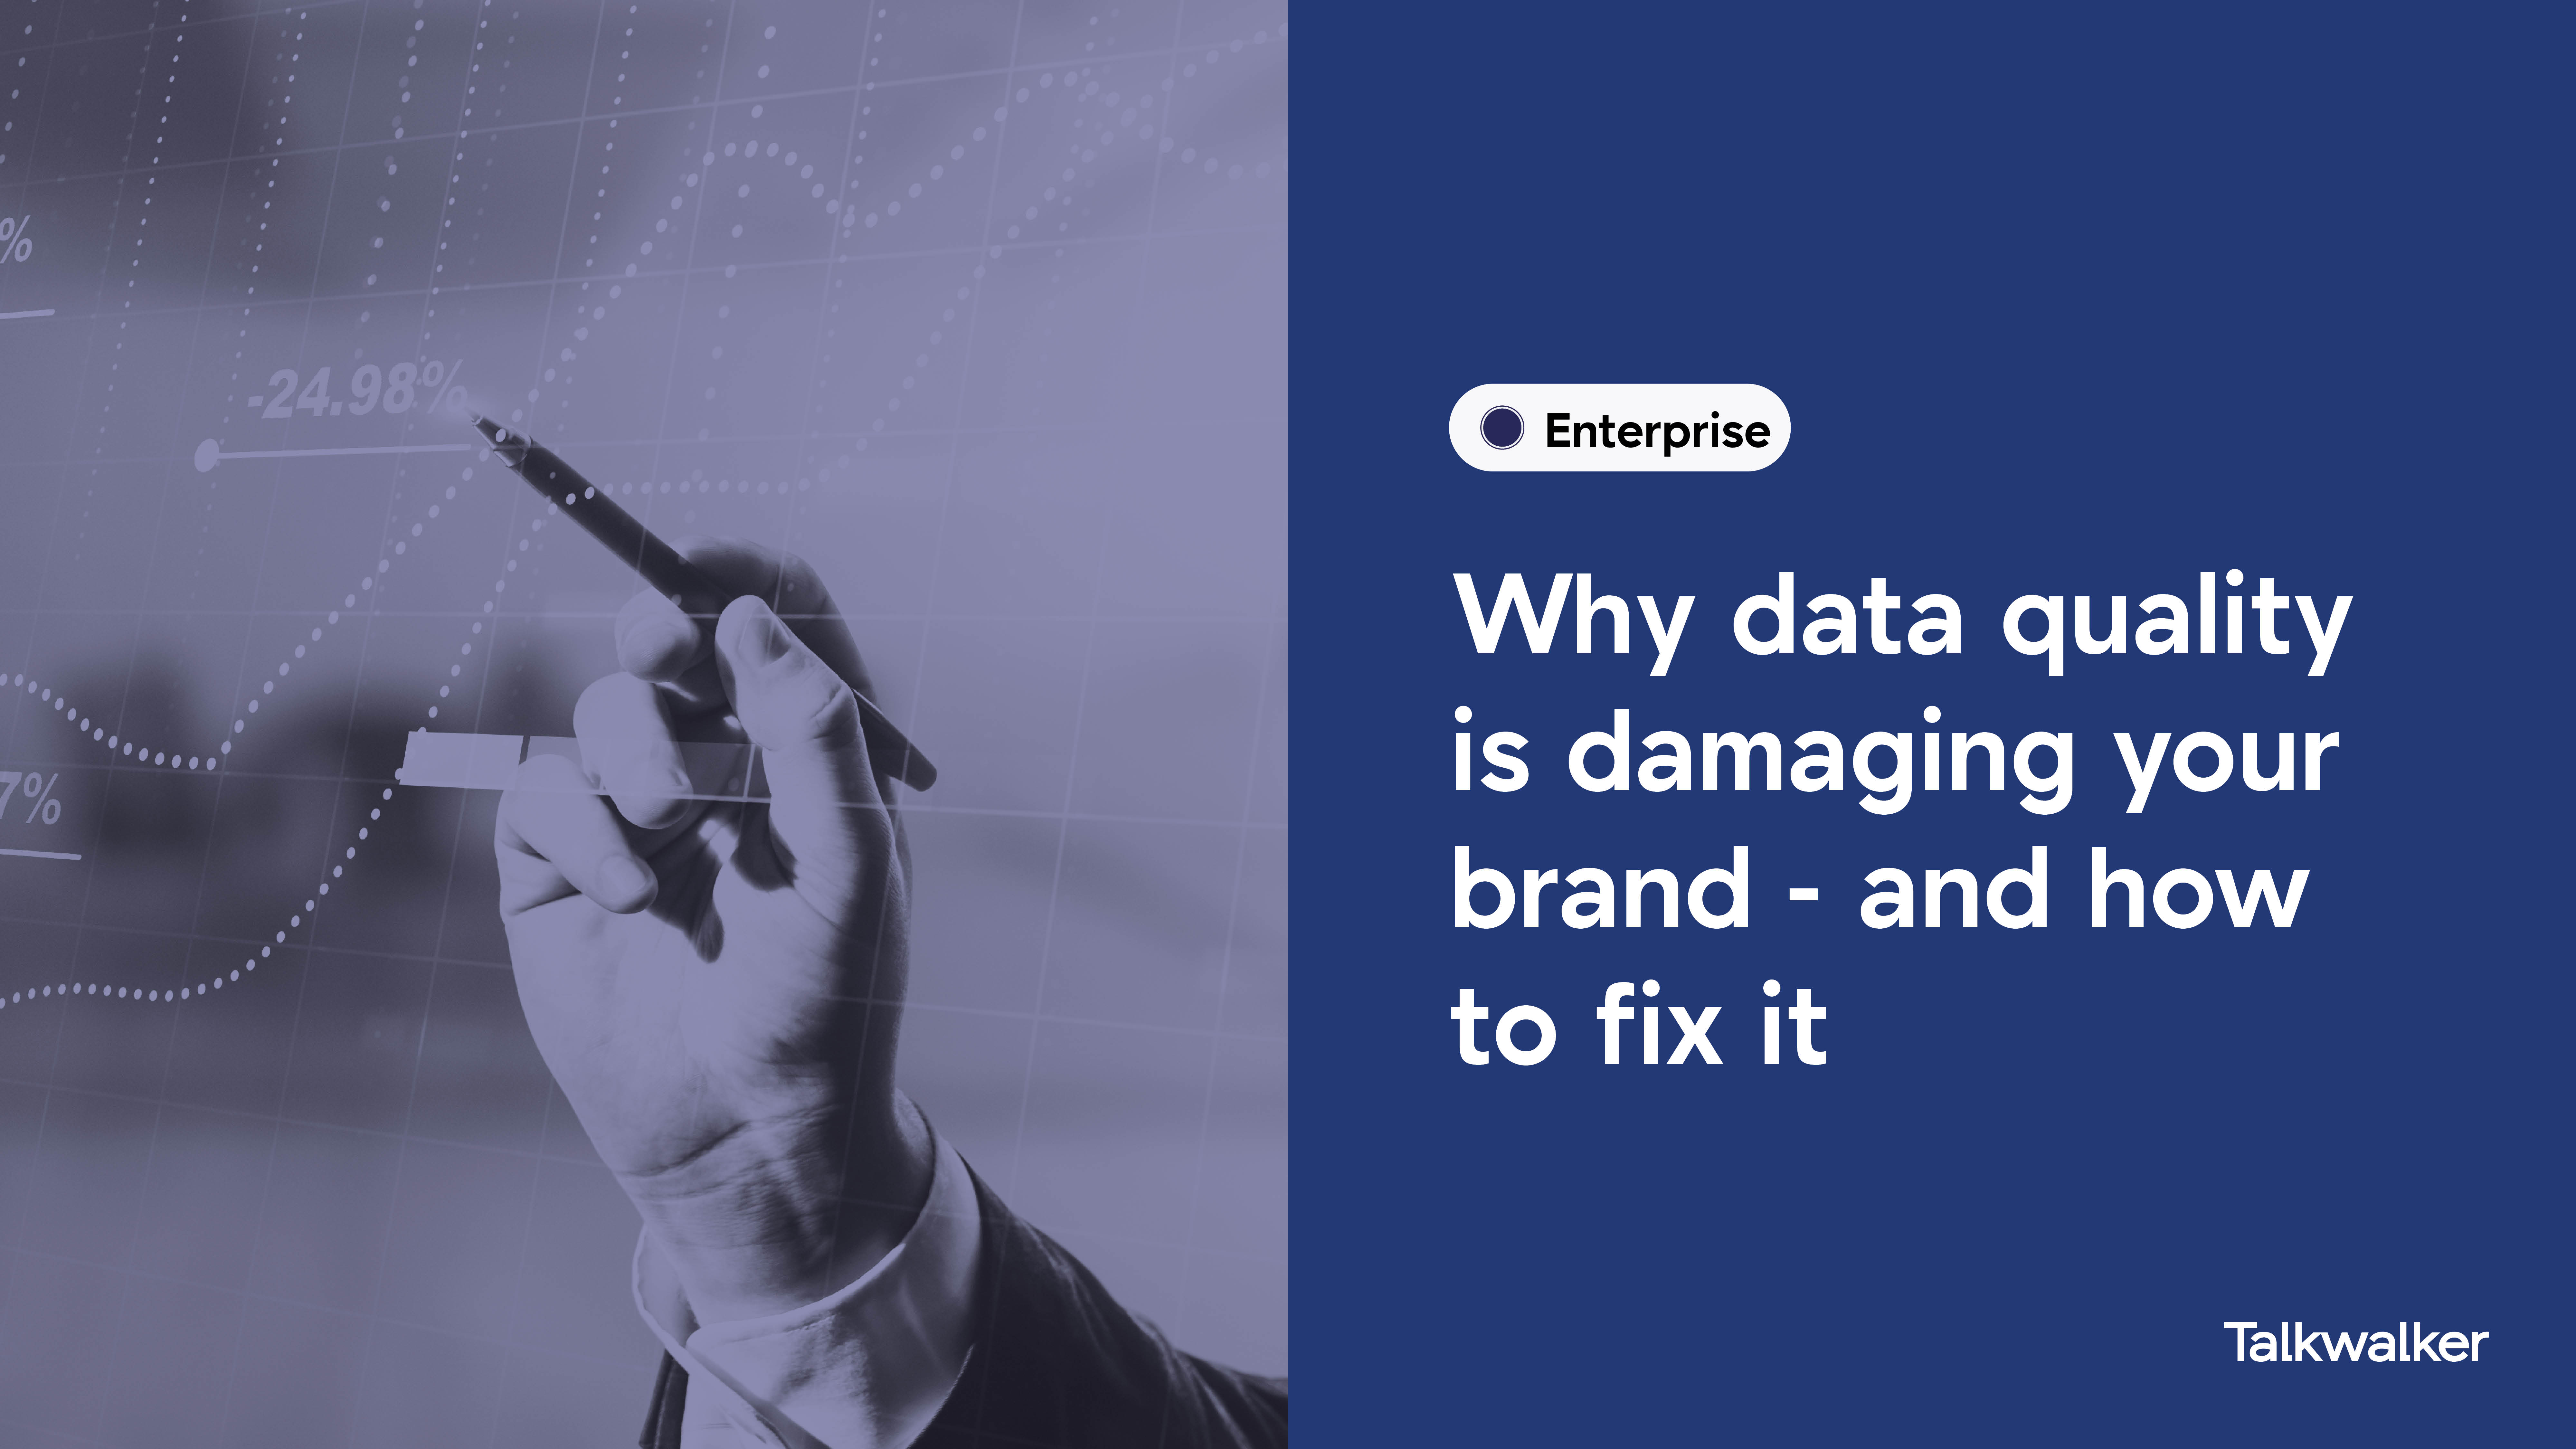 Why data quality is damaging your brand - and how to fix it